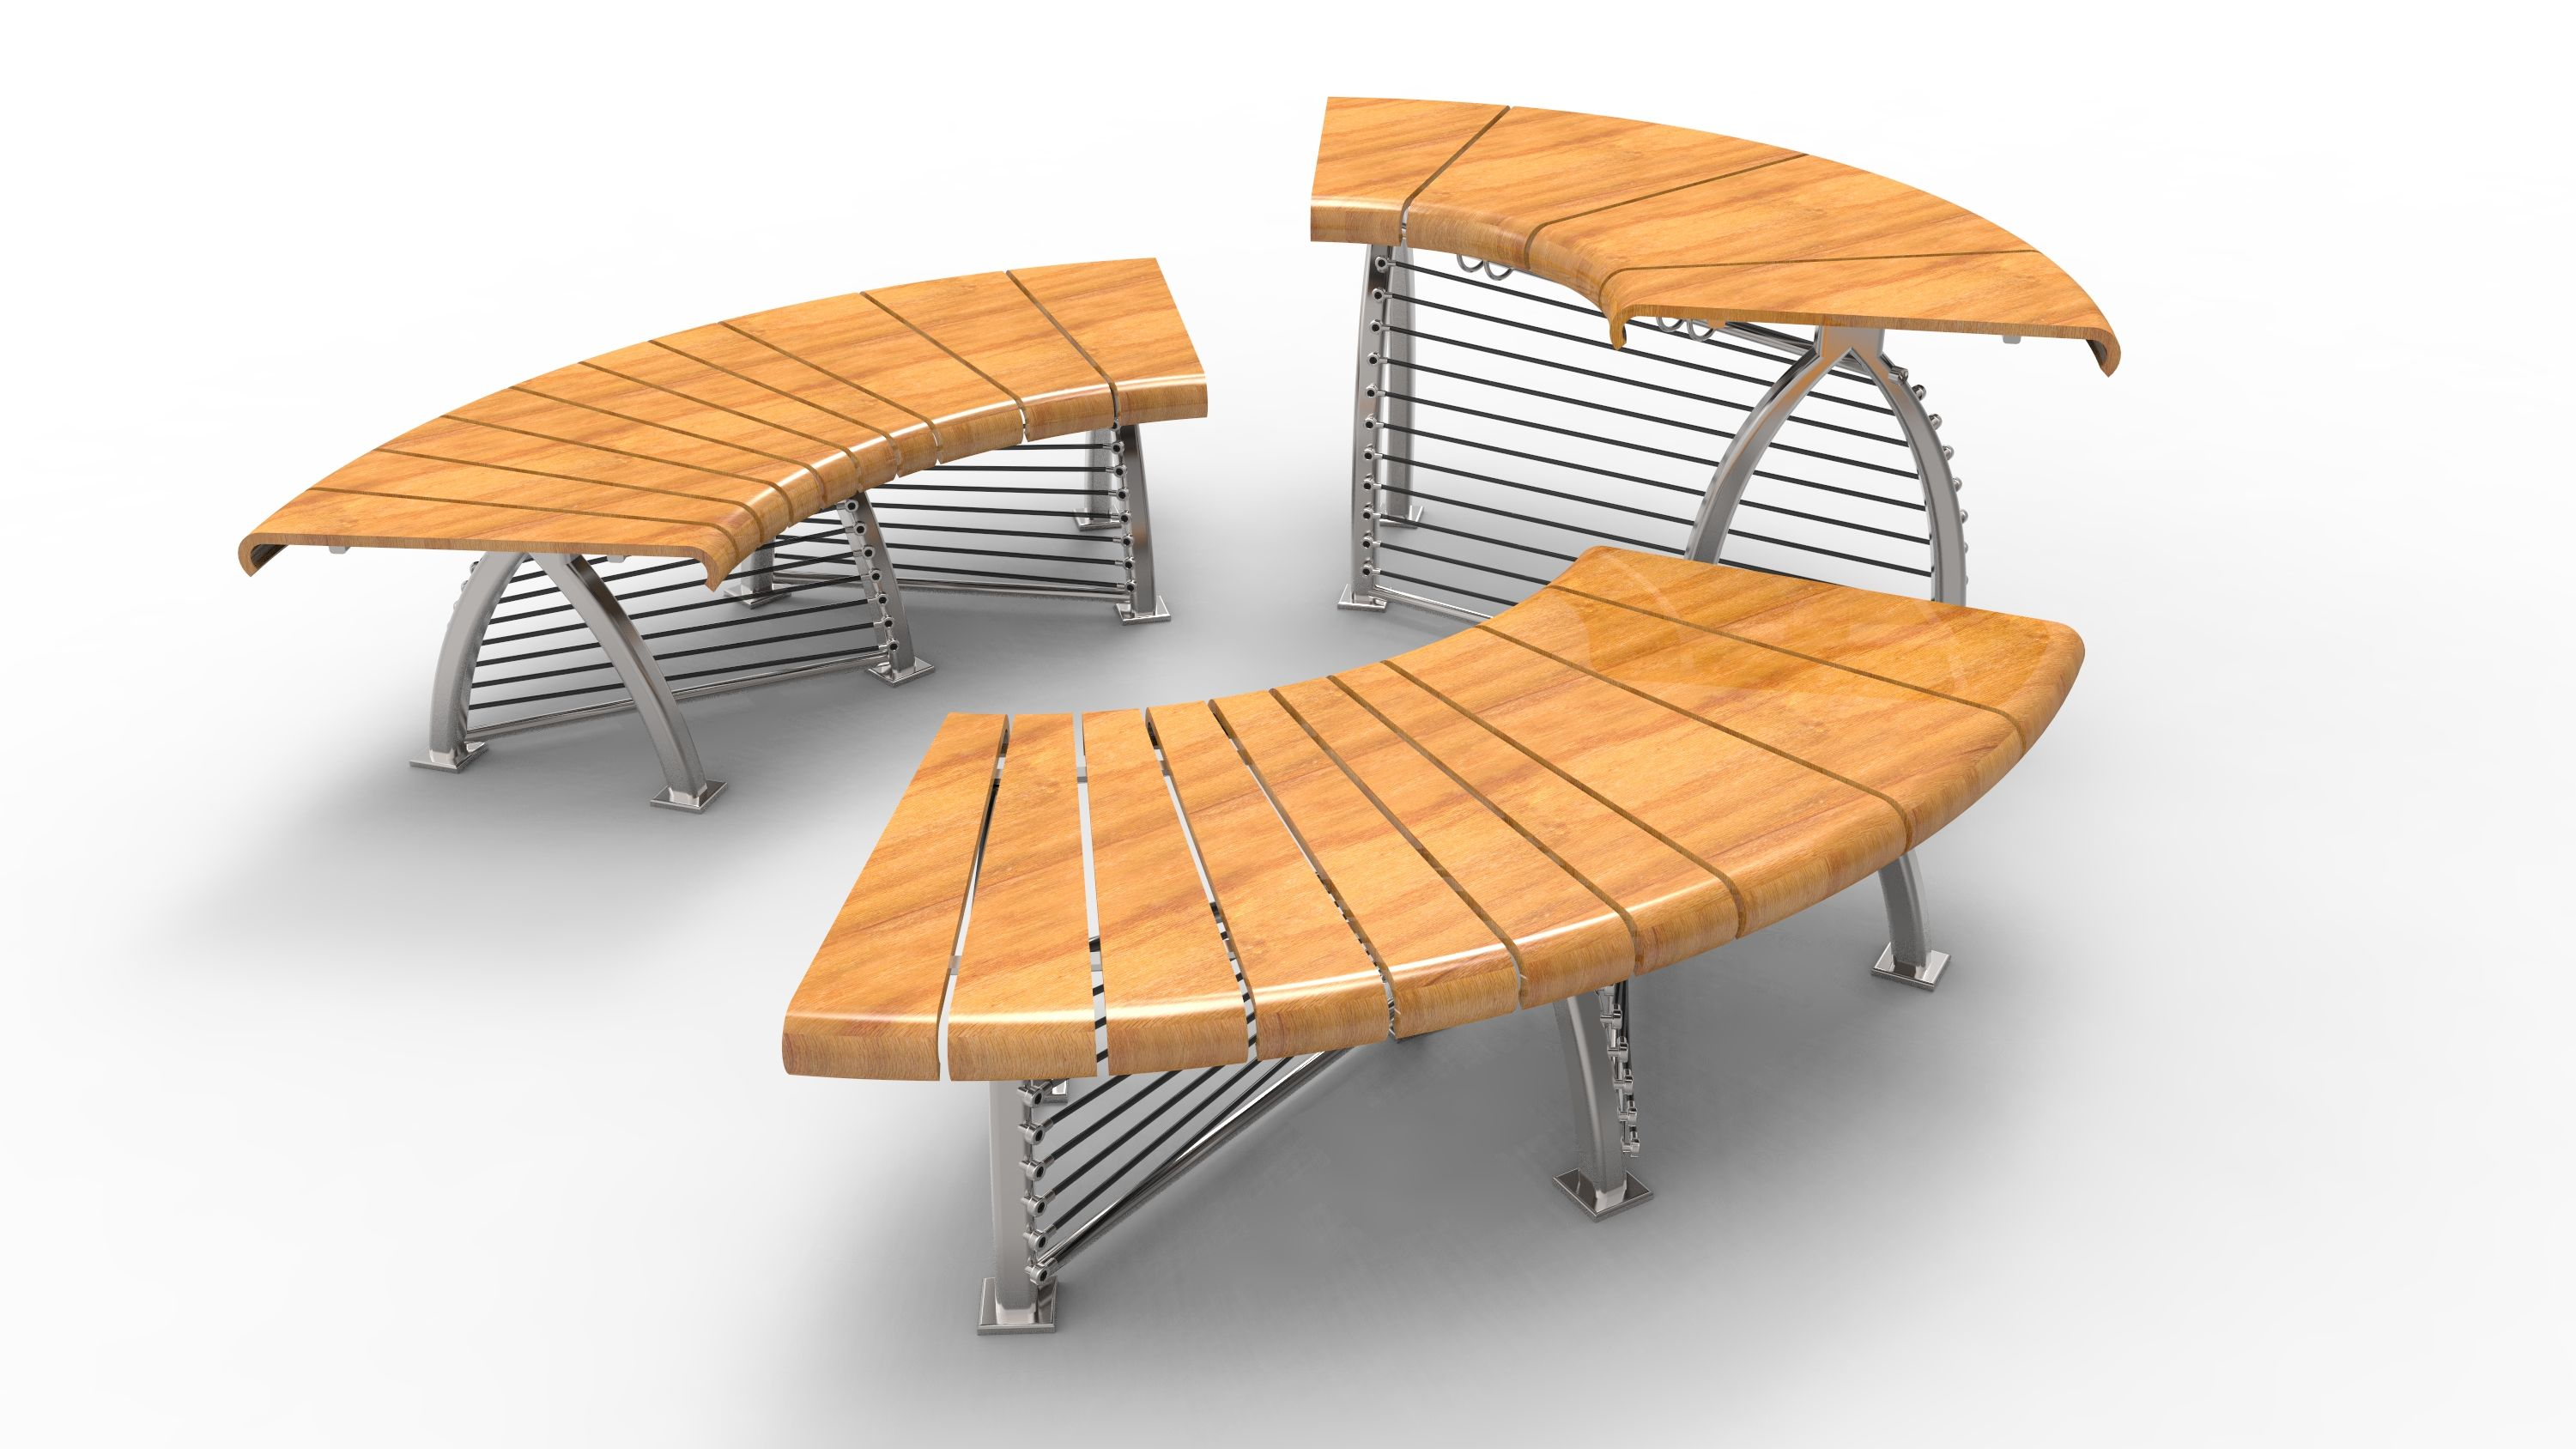 Really Digginu0027 This Wood And Metal Public Seating By Tyler Drake! Modeled  In Rhino